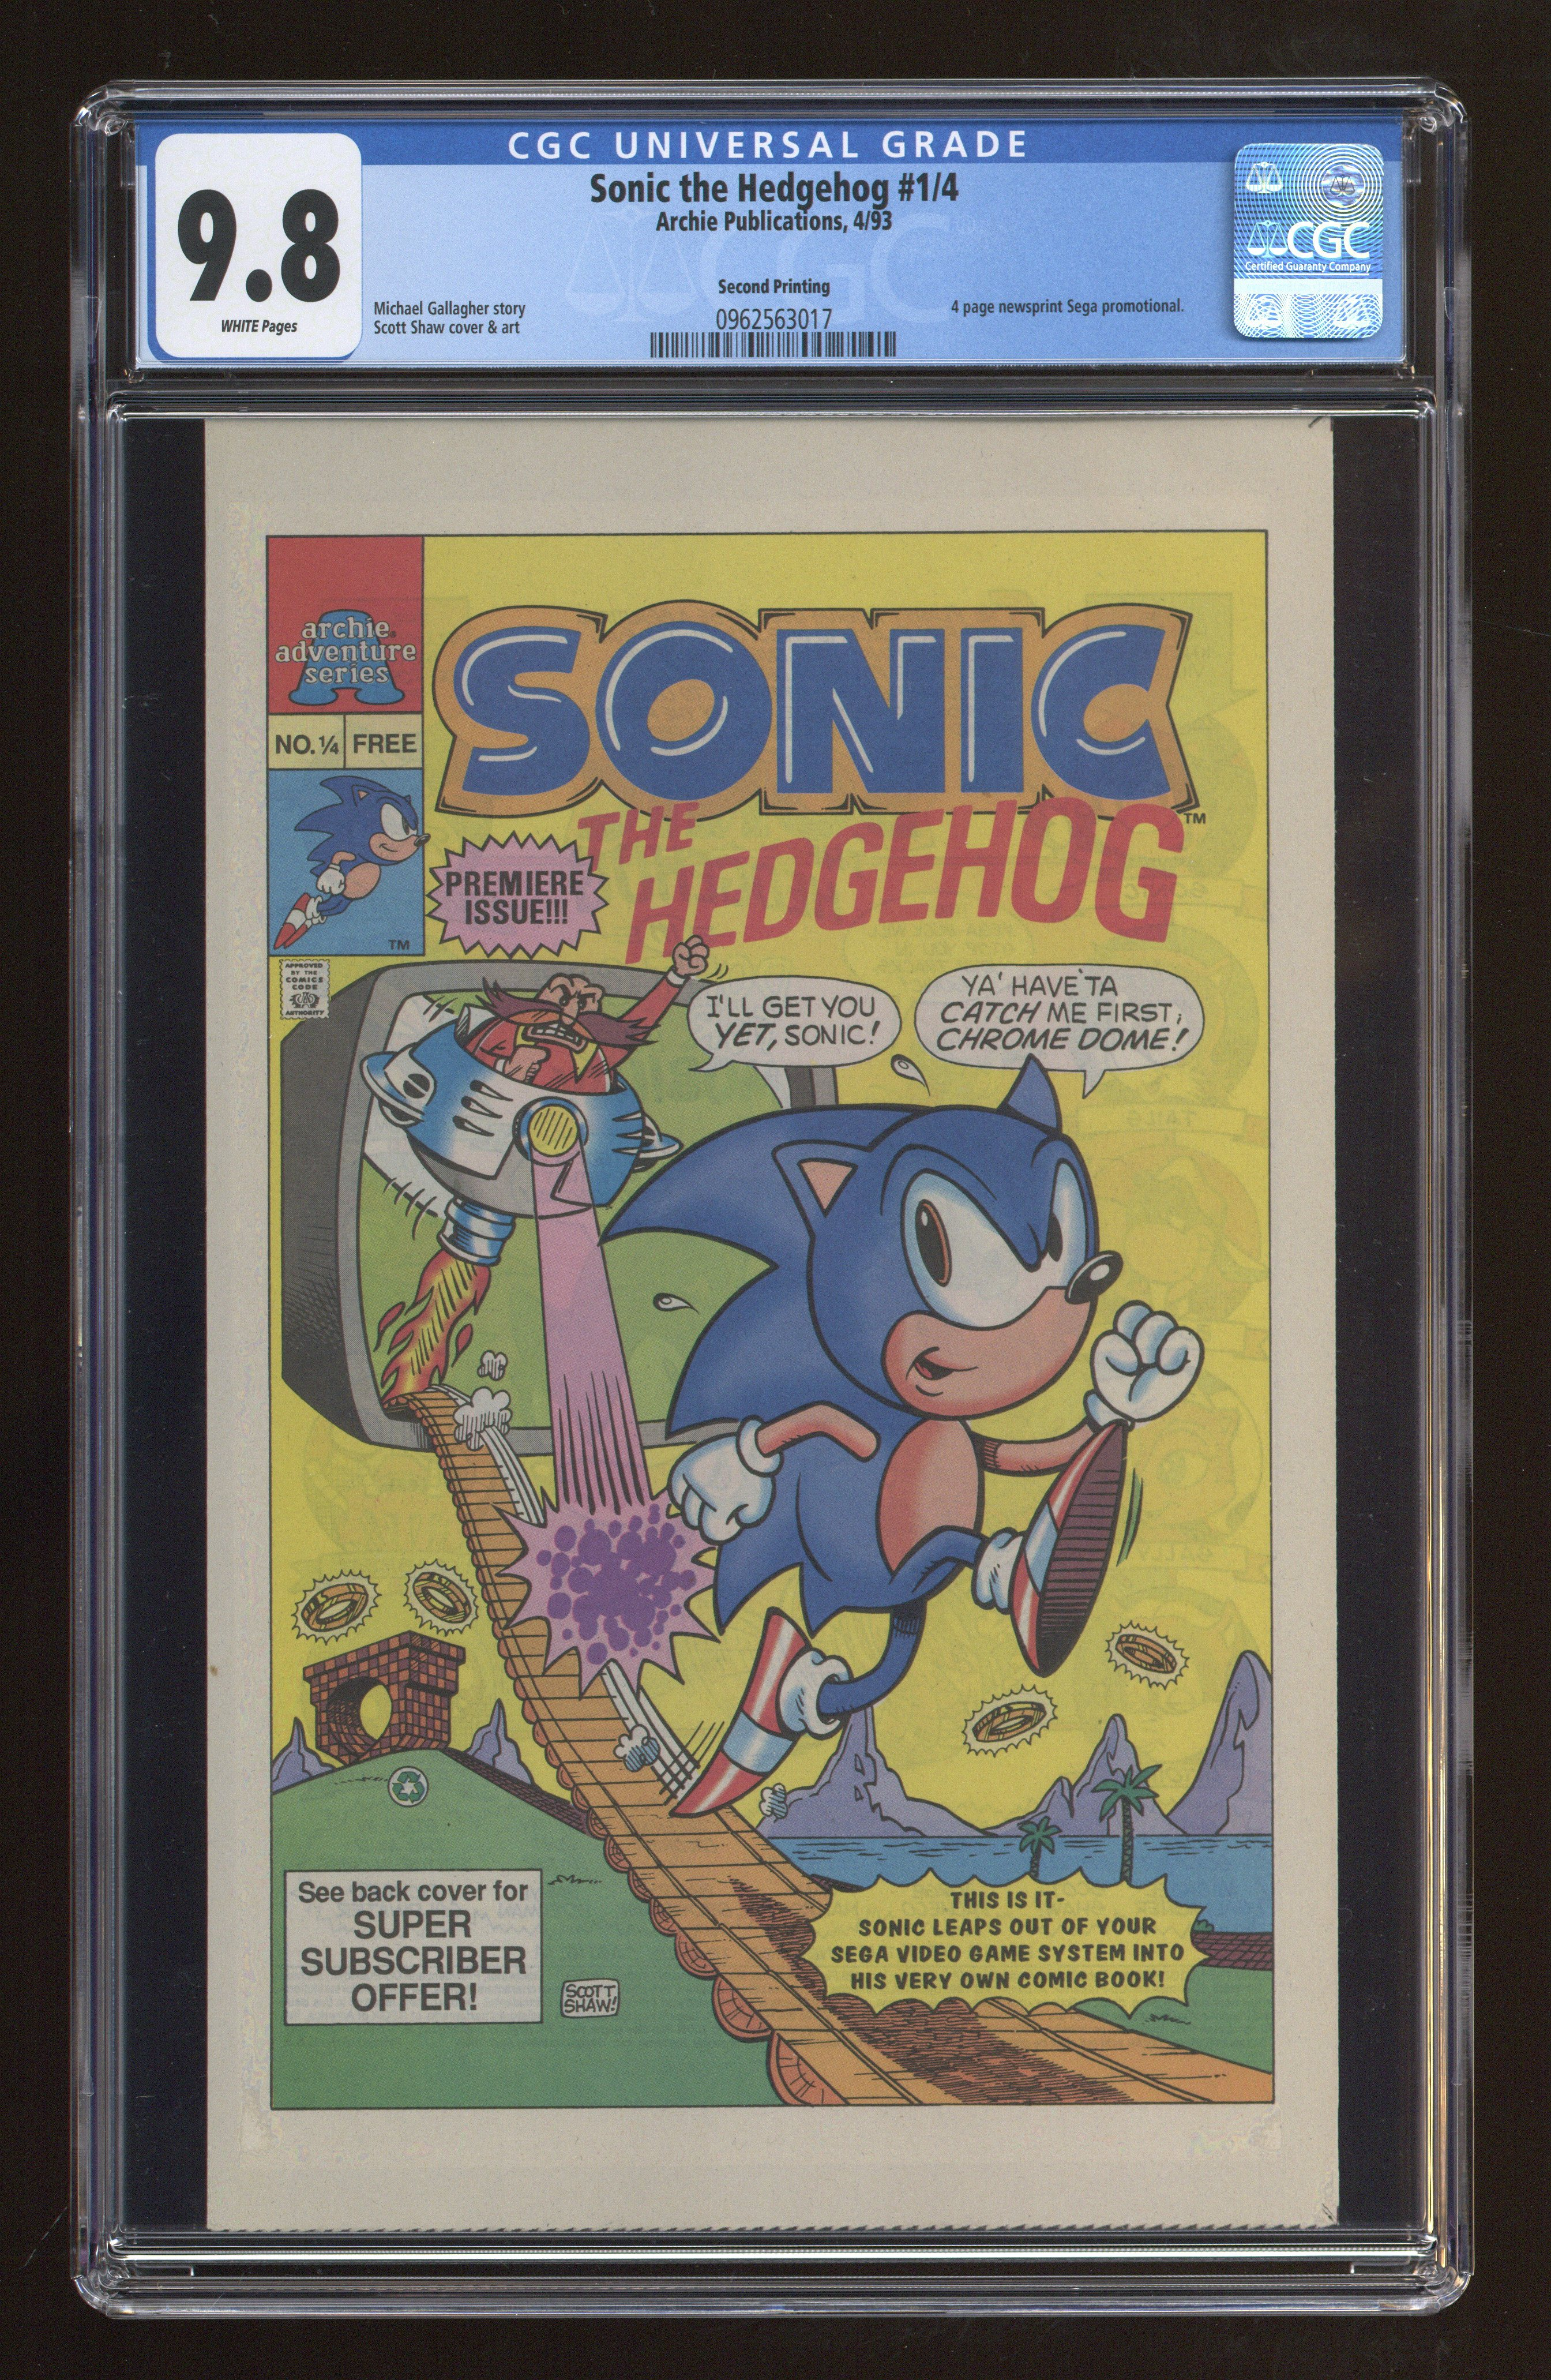 Sonic the Hedgehog comic books issue 1 graded by CGC